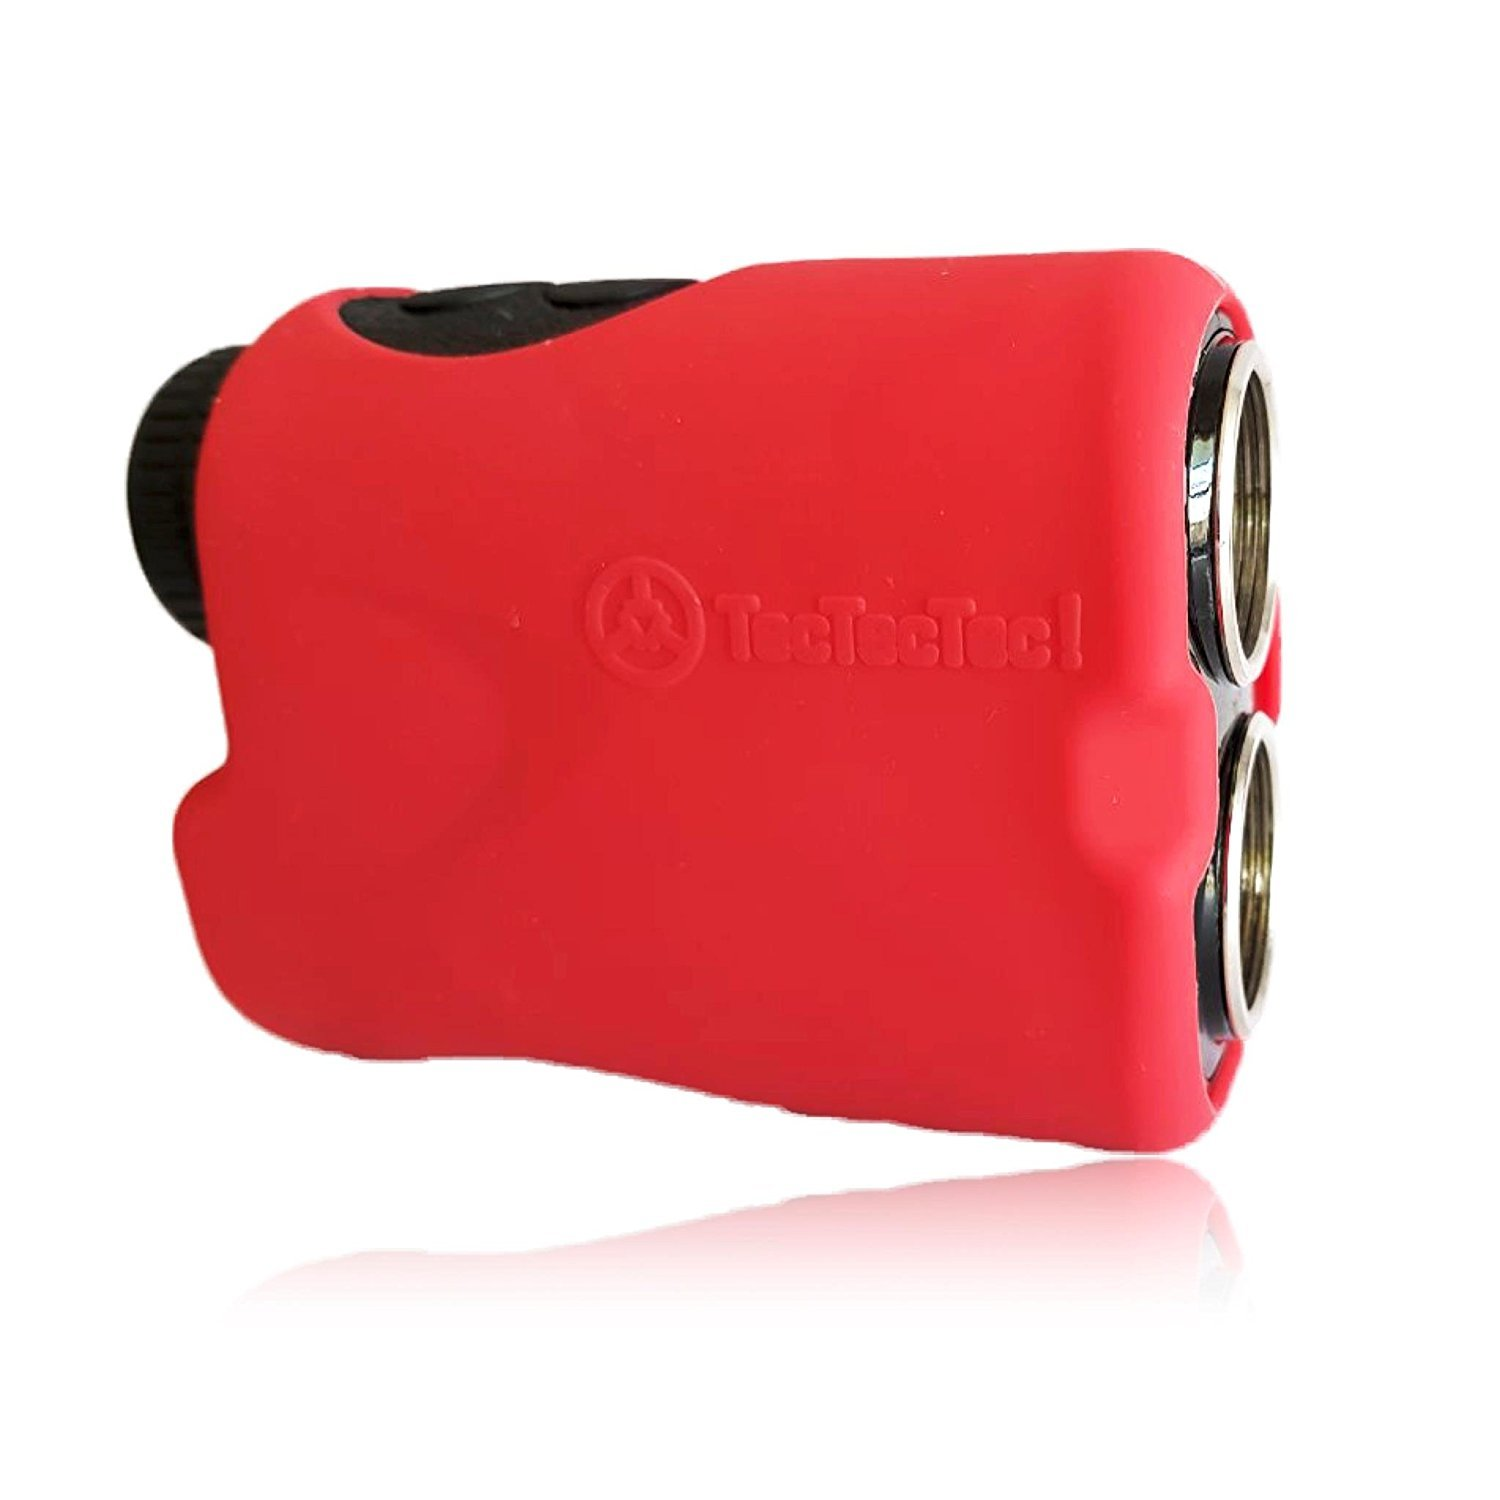 [TecTecTec][ シリコンケースSilicone case for VPRO500 and VPRO500S](並行輸入品) One Size One Color B07DJ66C3C